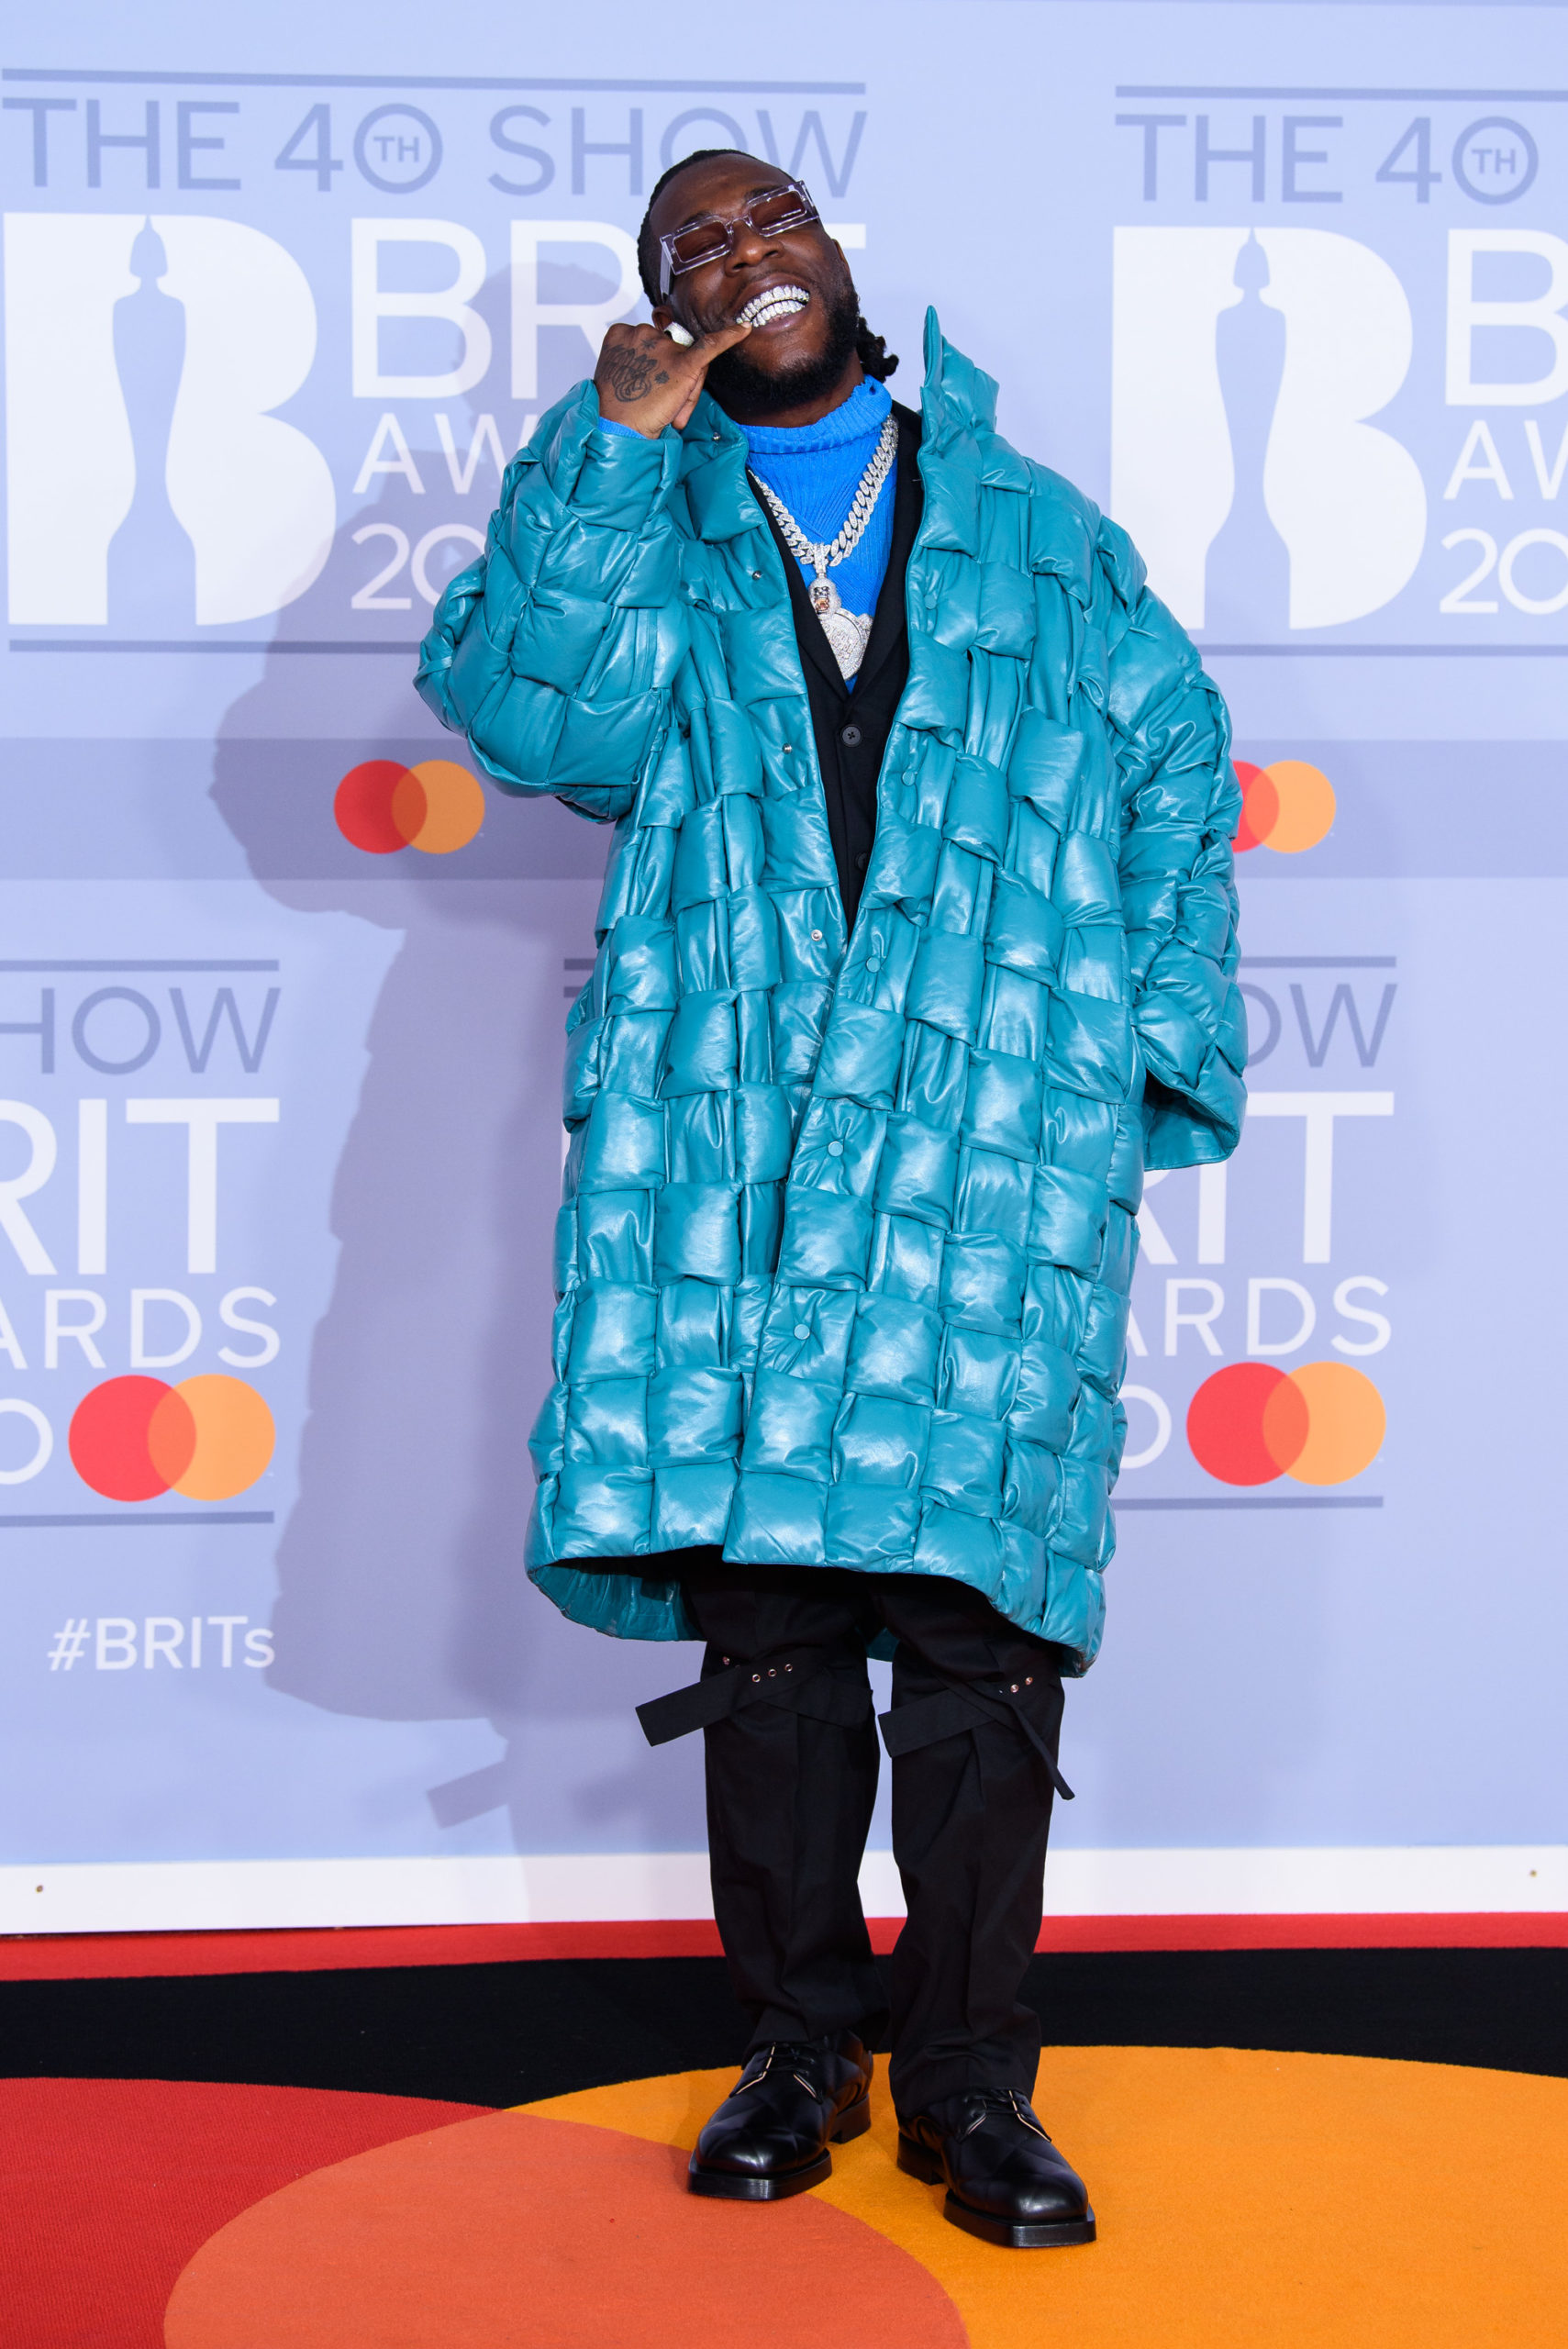 Burna Boy was an AFRICAN GIANT at the BRIT Awards 2020